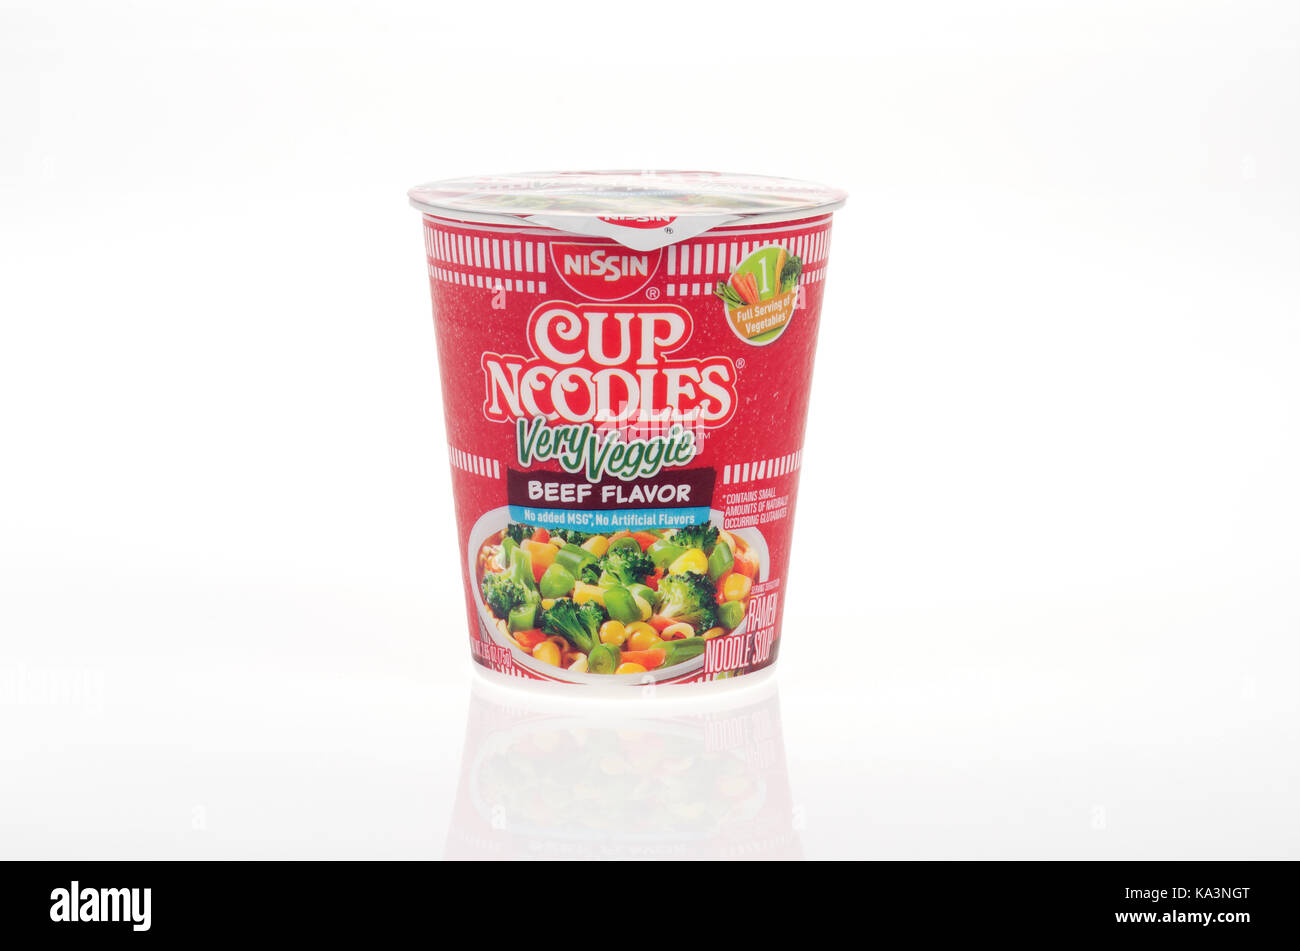 Nissin Cup of Noodles Very Veggie Beef flavor on white background cut out USA - Stock Image